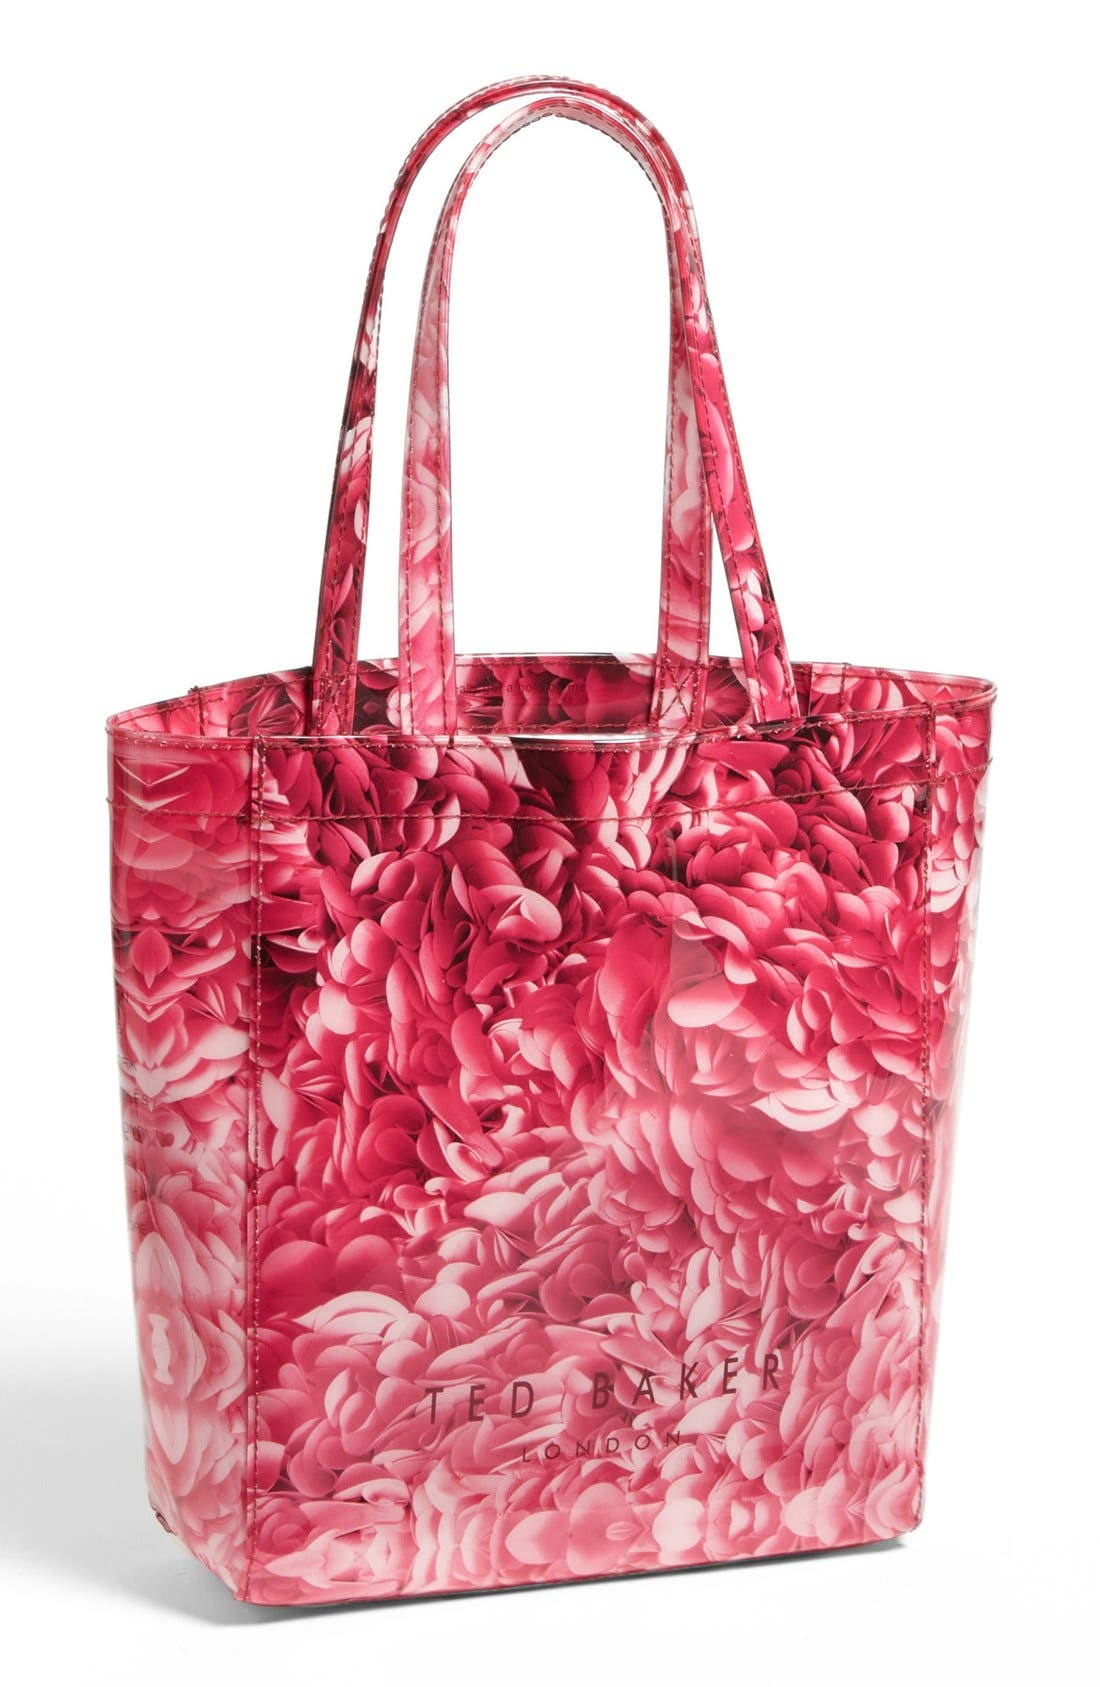 Alternate Image 1 Selected - Ted Baker London 'Holiday - Rosette Ikon' Tote